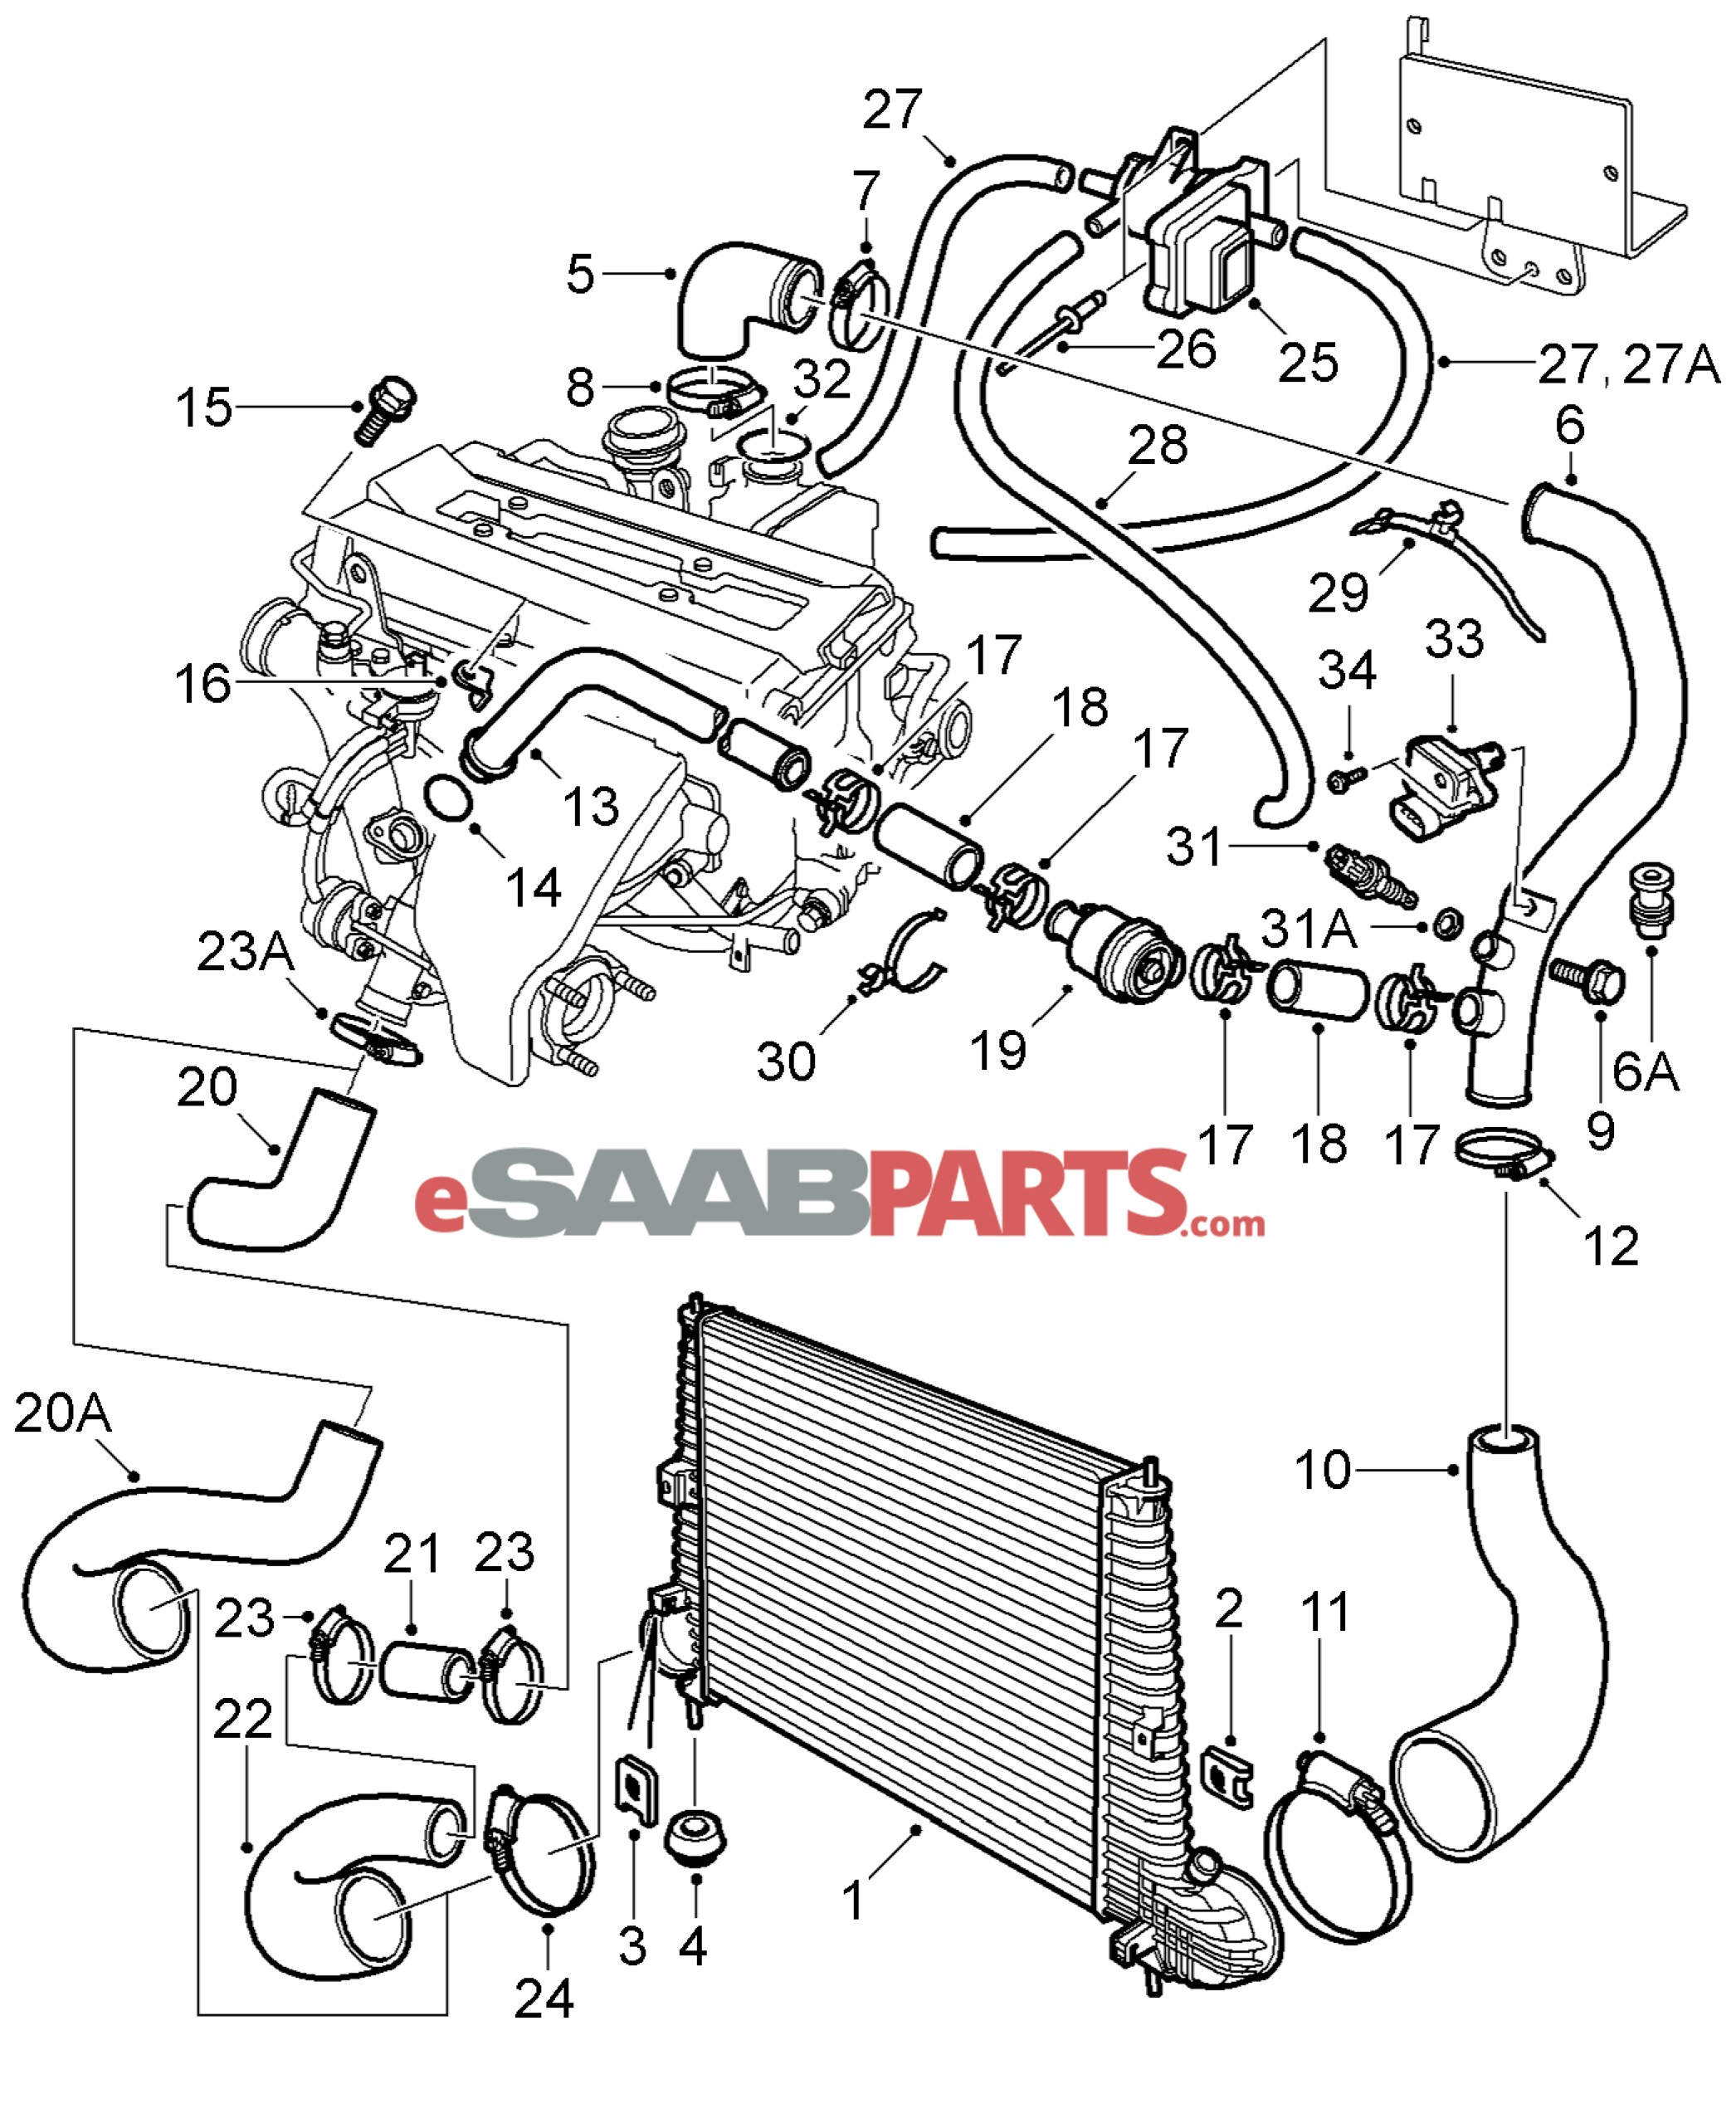 2000 Ford Ranger Transmission Diagram Complete Wiring Diagrams 1994 Parts Fuse Box Transmis Rh Scoala Co